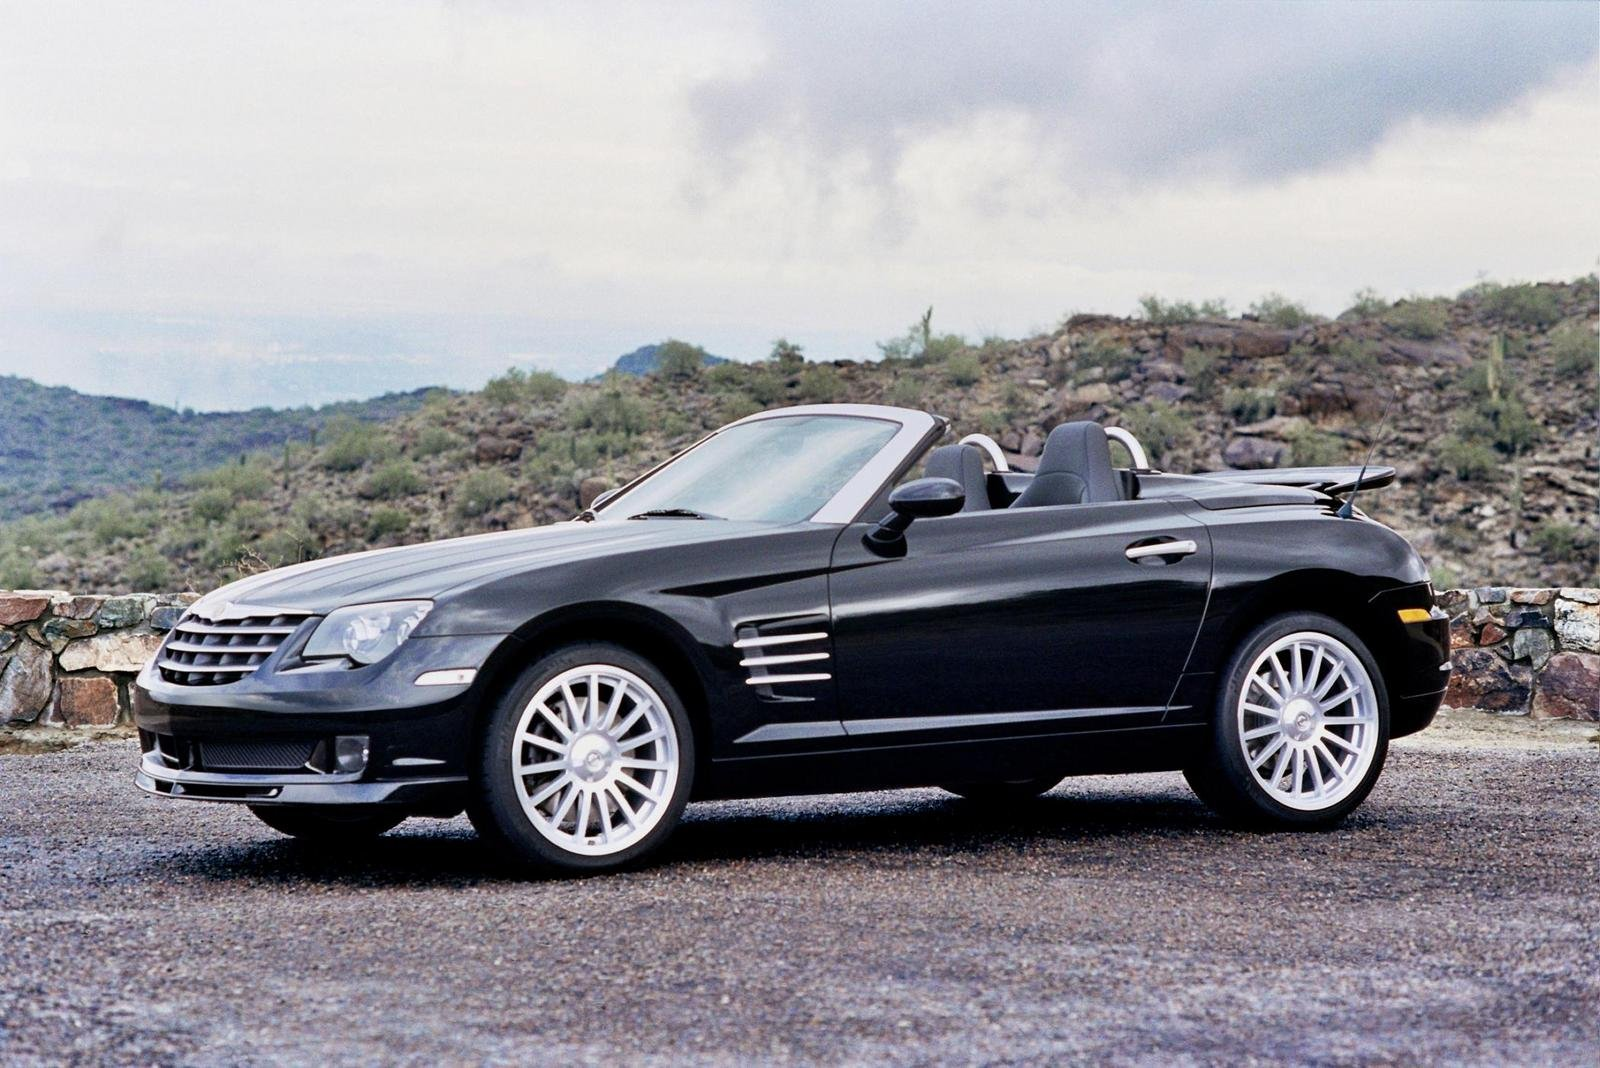 2006 chrysler crossfire srt6 review top speed. Black Bedroom Furniture Sets. Home Design Ideas